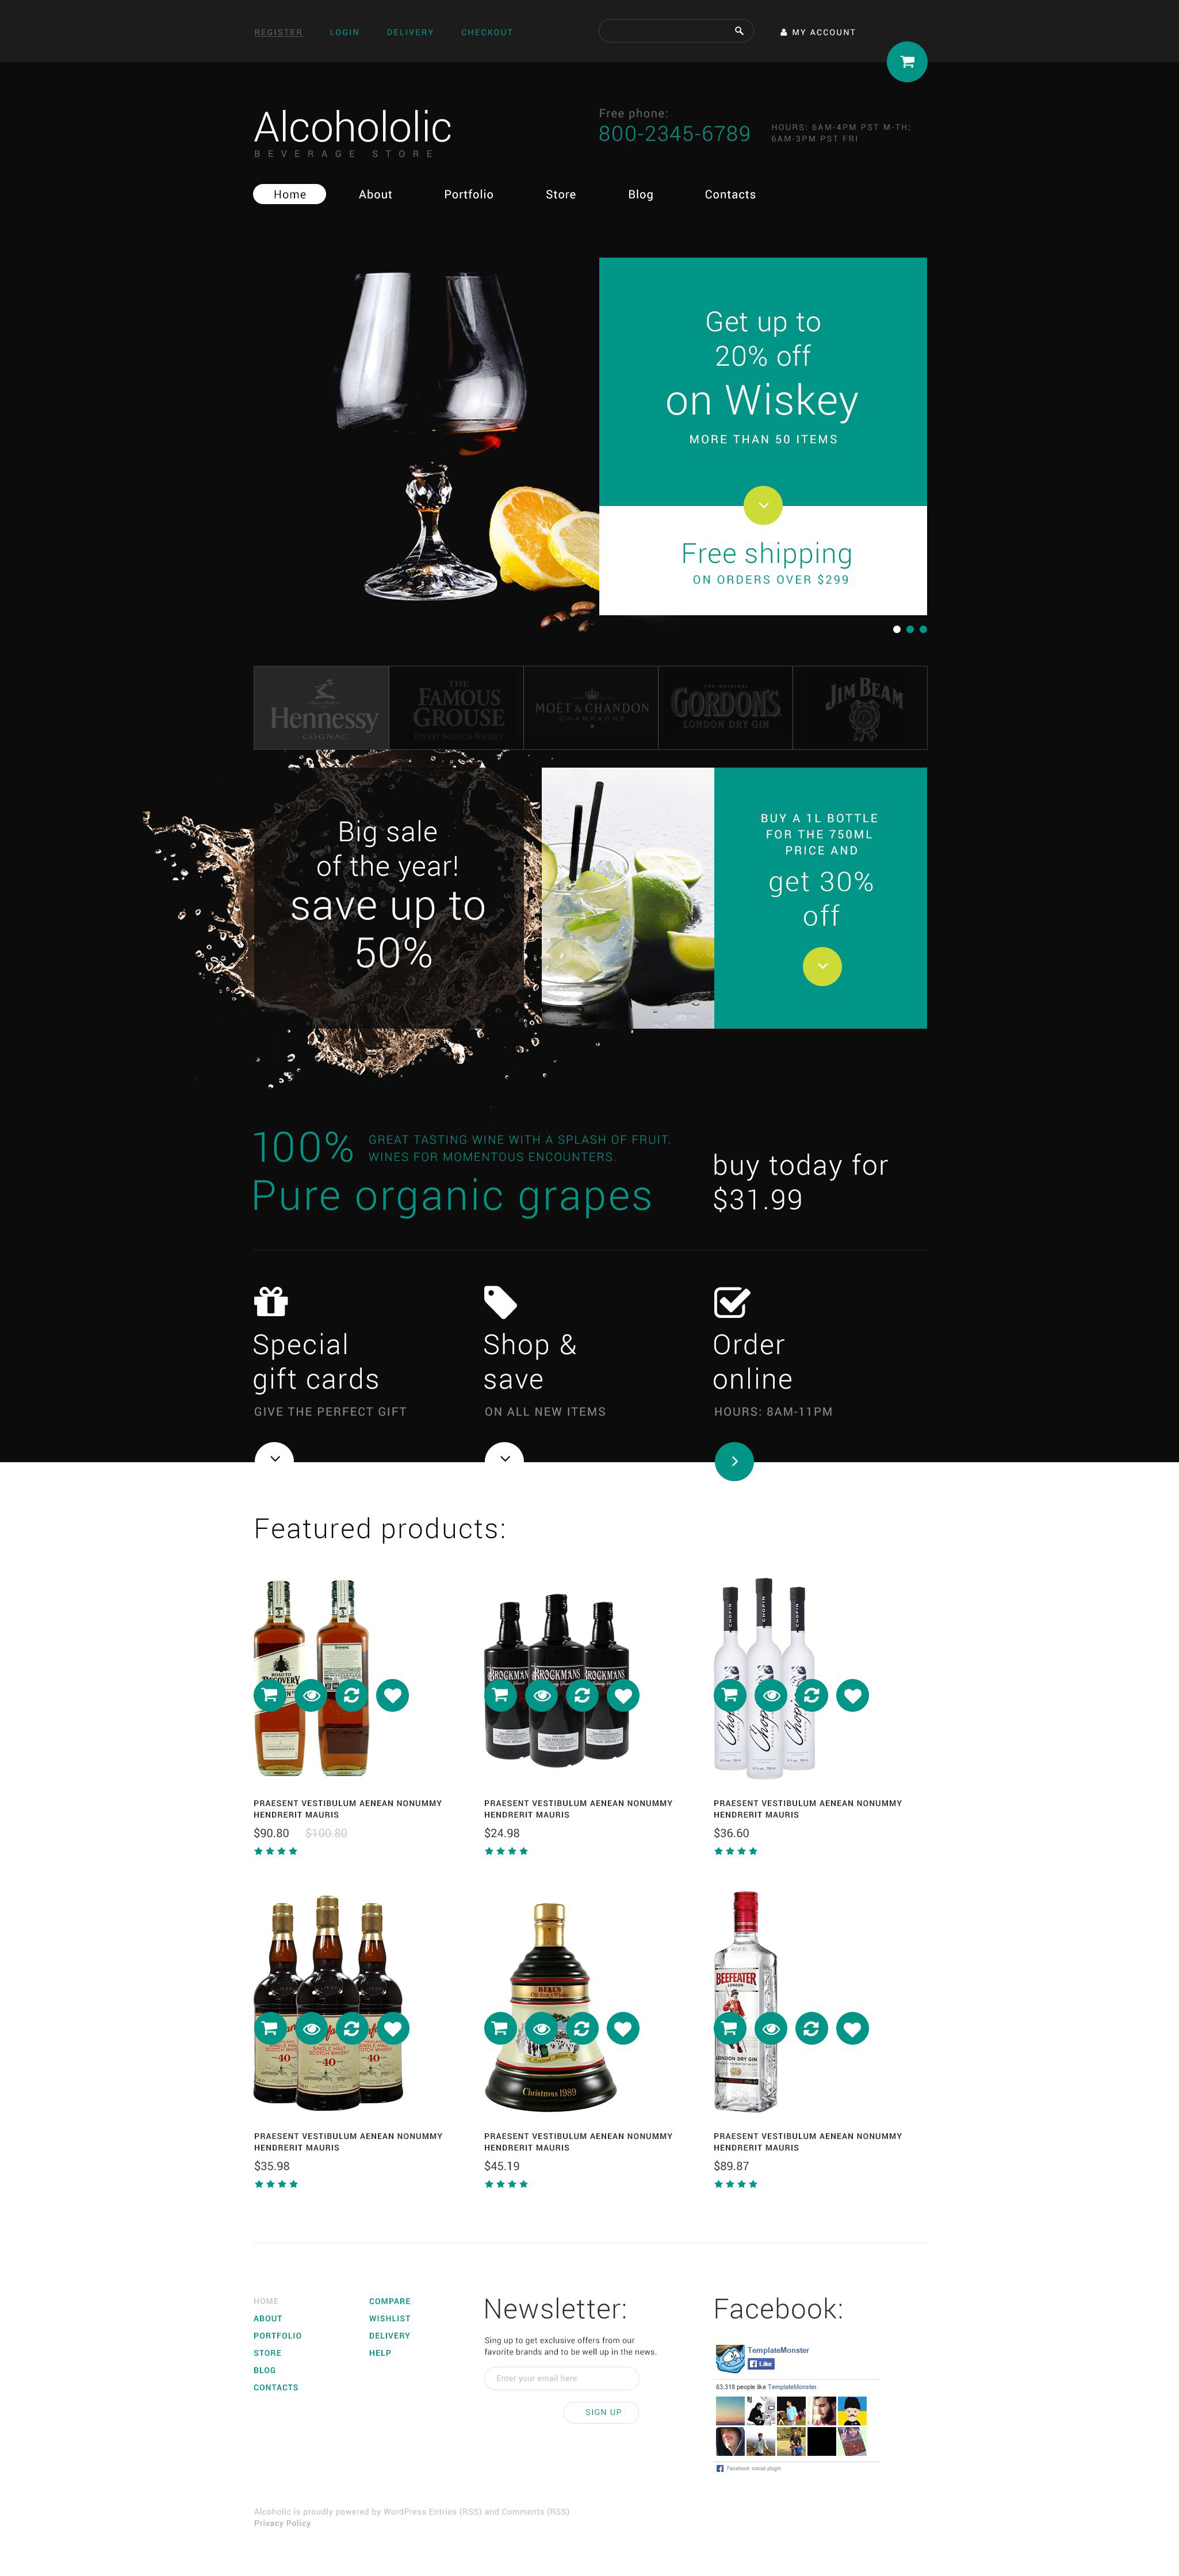 The Alcohololic Beverage Store WooCommerce Design 53953, one of the best WooCommerce themes of its kind (food & drink, most popular), also known as alcohololic beverage store WooCommerce template, scoth WooCommerce template, whisky WooCommerce template, rum WooCommerce template, cognac WooCommerce template, armagnac WooCommerce template, gin WooCommerce template, jenever WooCommerce template, absinthe WooCommerce template, vodka WooCommerce template, tequila WooCommerce template, glenfiddich WooCommerce template, absolut WooCommerce template, vanilia WooCommerce template, ancnoc WooCommerce template, balvenie WooCommerce template, shopping cart and related with alcohololic beverage store, scoth, whisky, rum, cognac, armagnac, gin, jenever, absinthe, vodka, tequila, glenfiddich, absolut, vanilia, ancnoc, balvenie, shopping cart, etc.